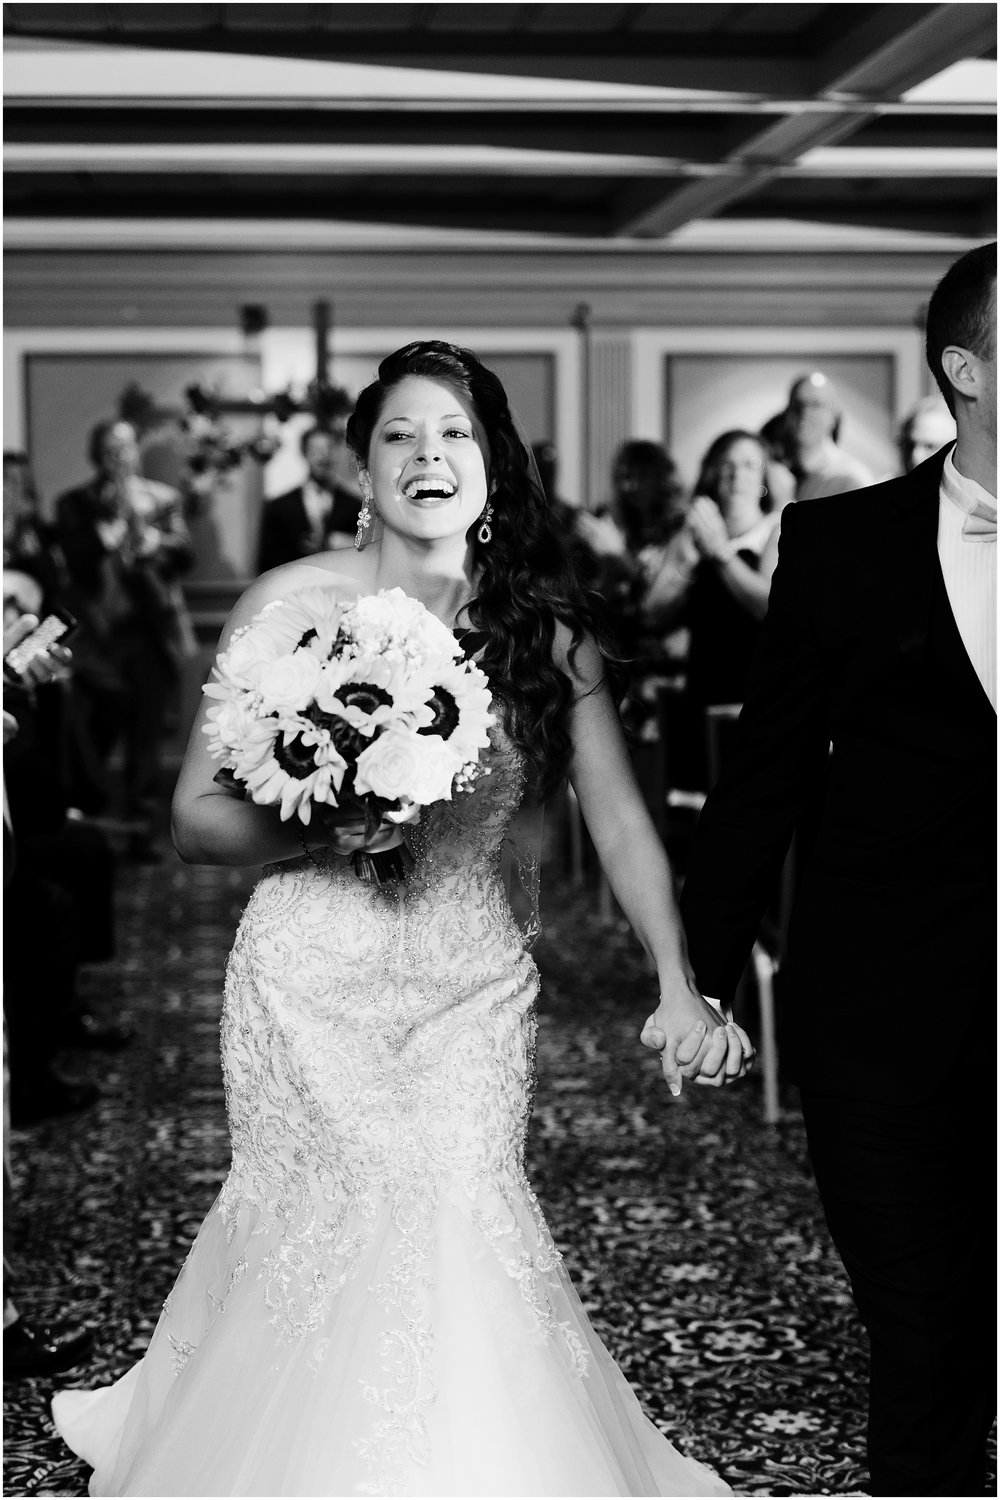 Hannah Leigh Photography Nittany Lion Inn Wedding State College PA_5009.jpg